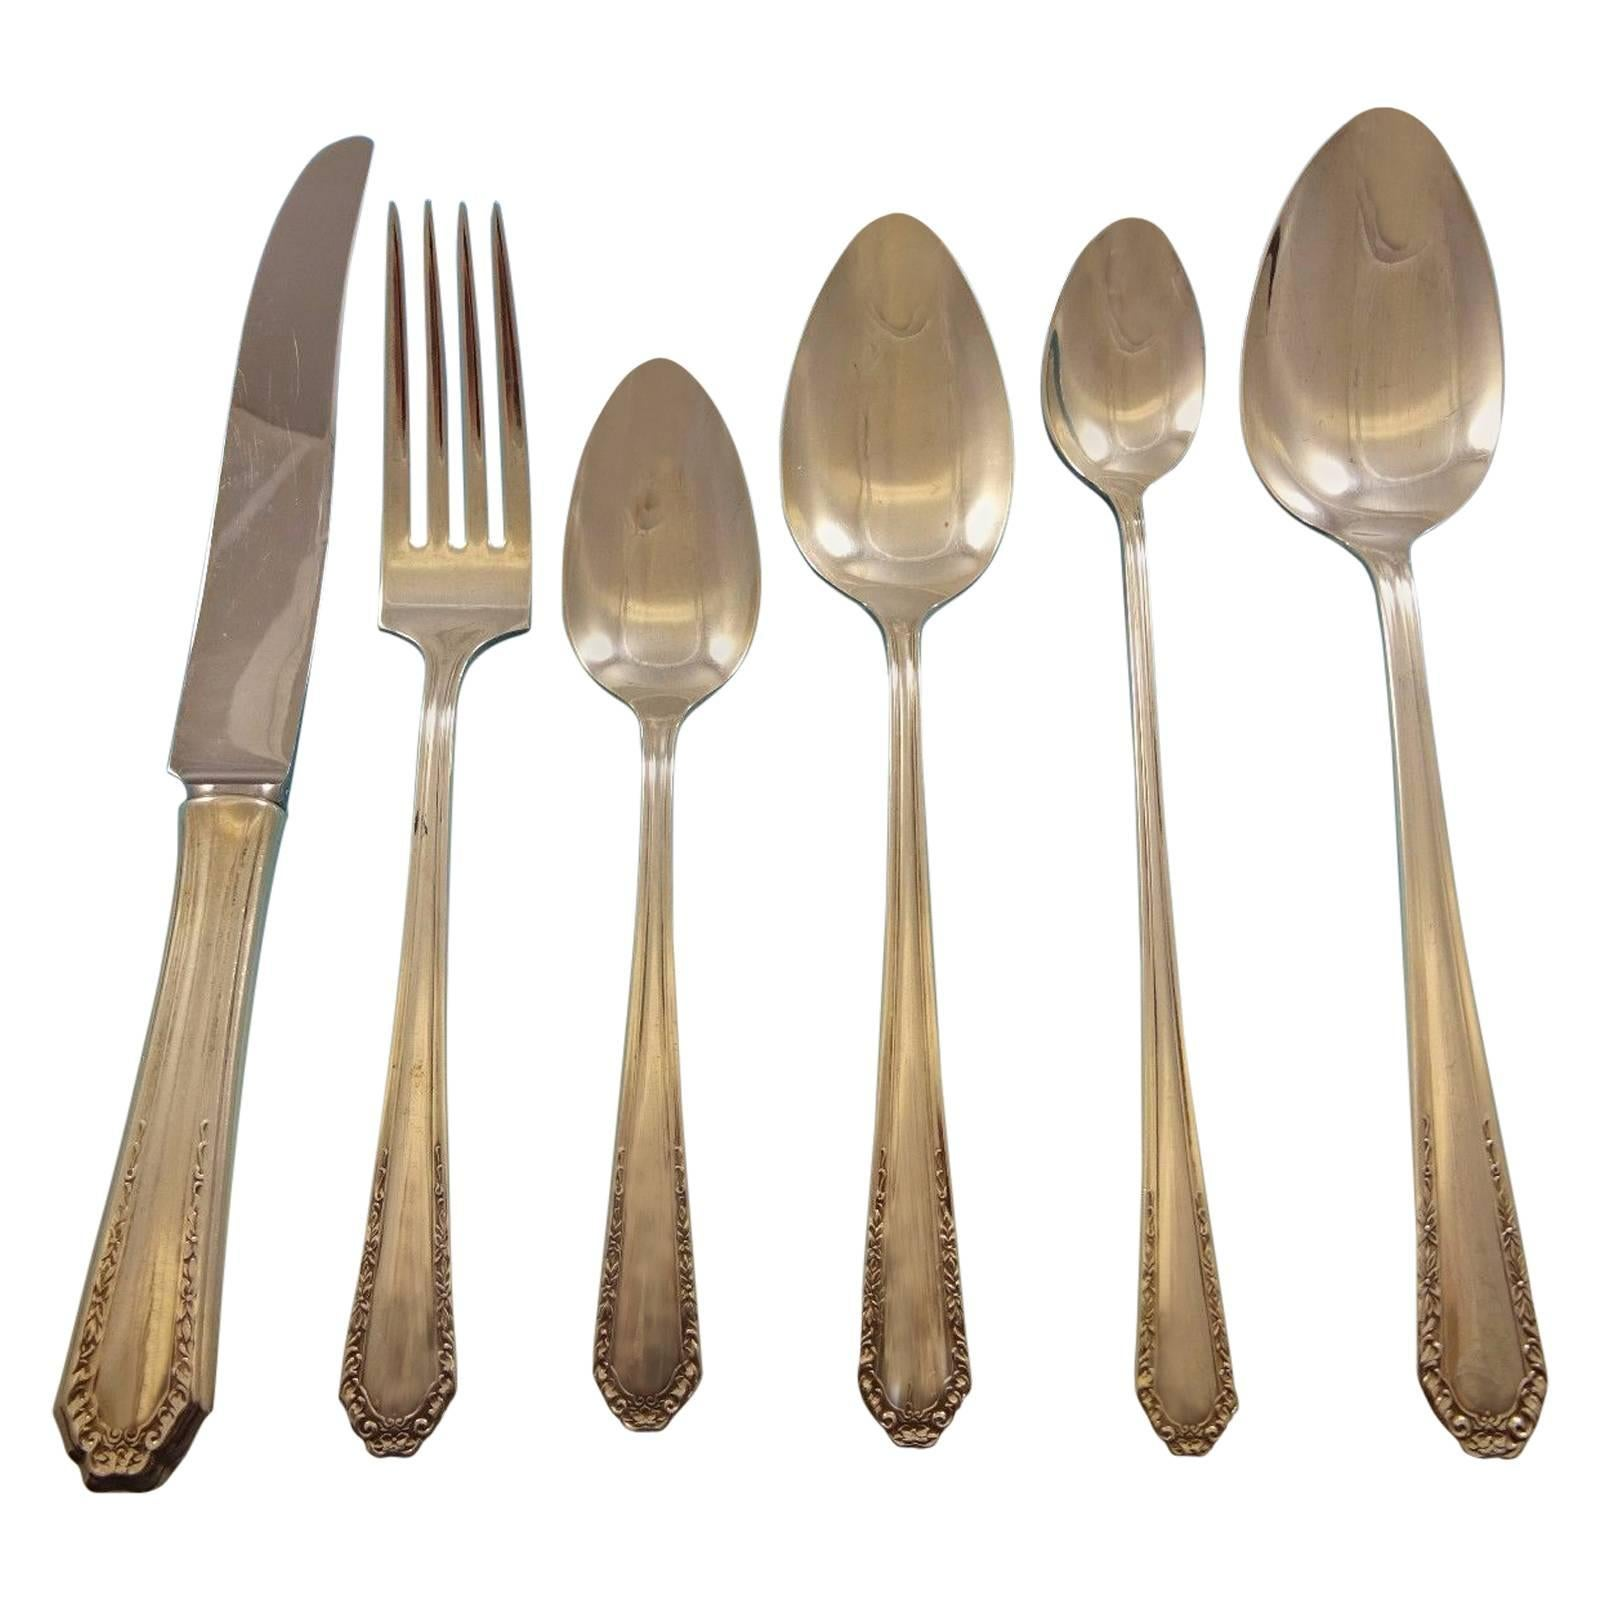 Marianne by National Sterling Silver Flatware Service for Six Set of 38 Pieces